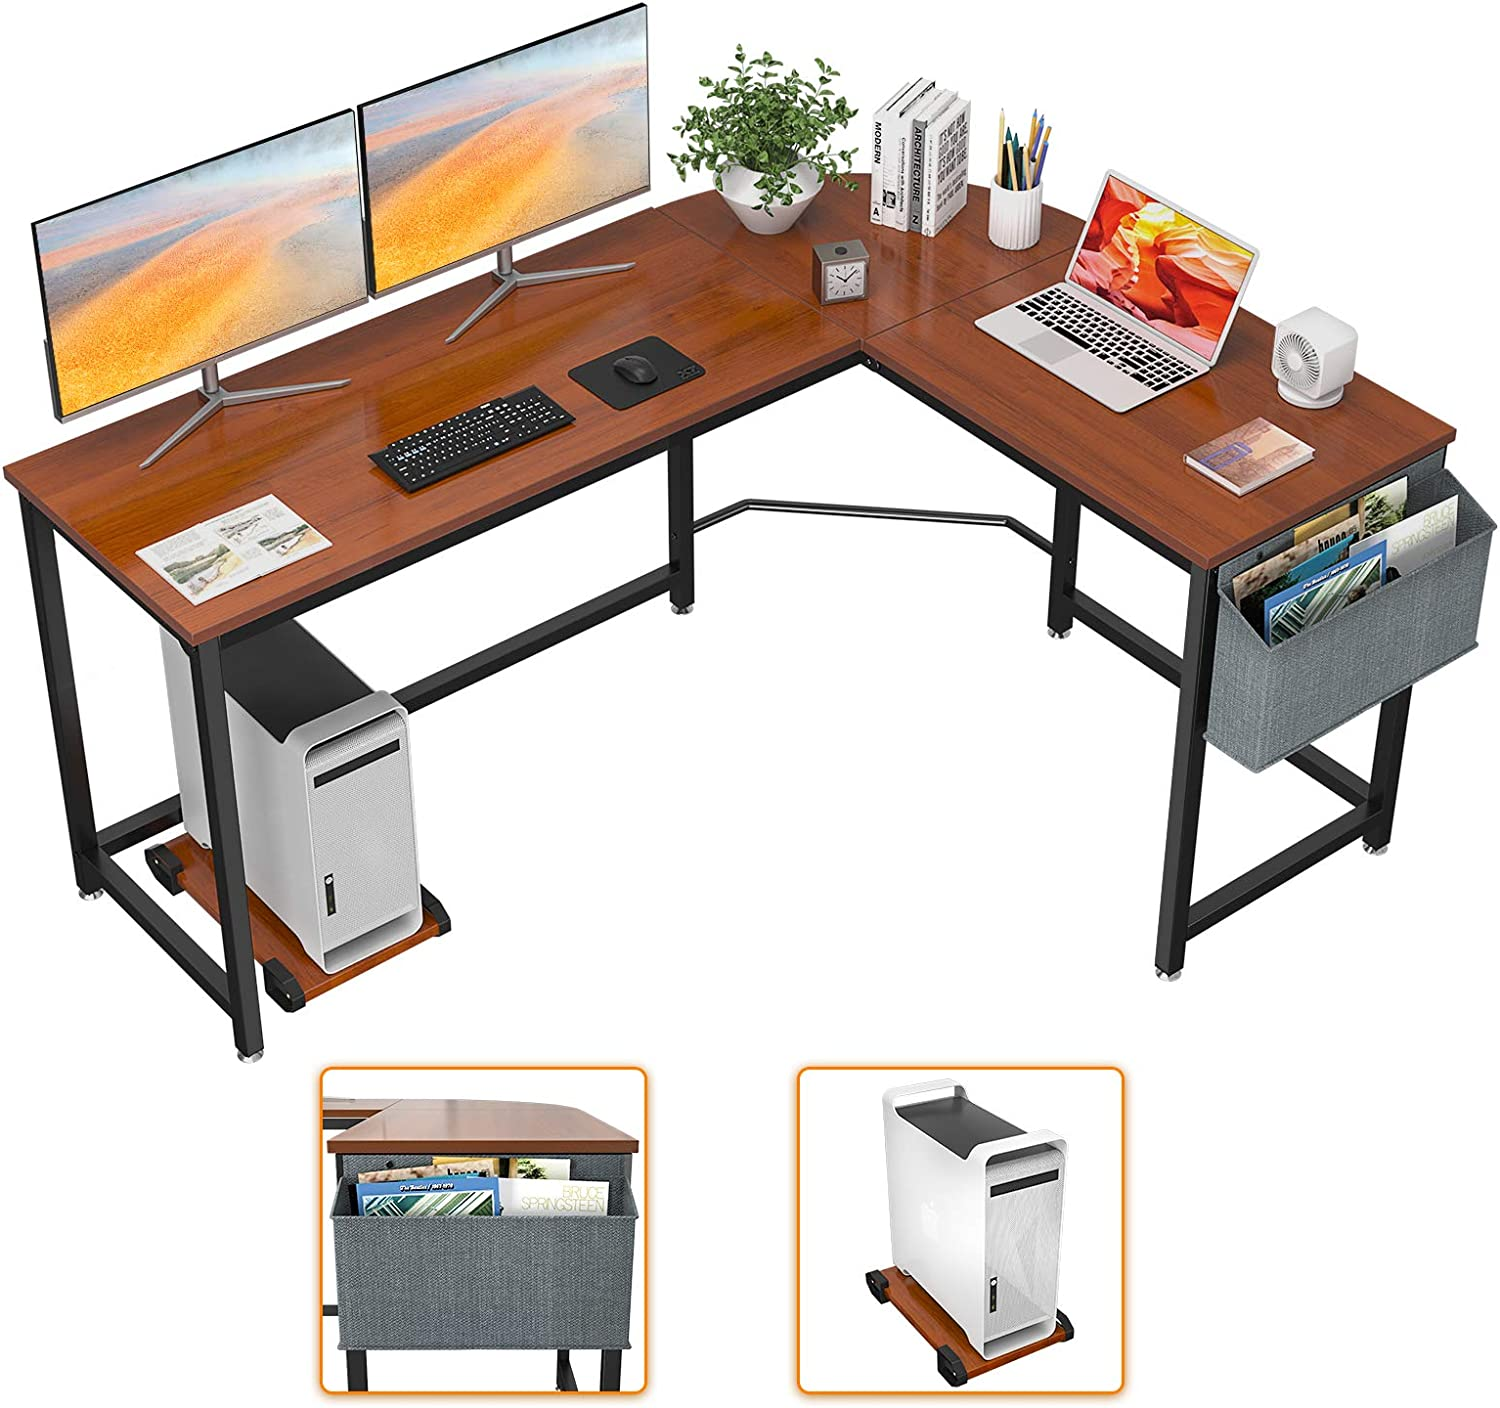 Homfio L Shaped Desk 58'' Computer Corner Desk Gaming Desk PC Table Writing Desk Large L Study Desk Home Office Workstation Modern Simple Multi-Usage Desk with Storage Bag Space-Saving Wooden Table